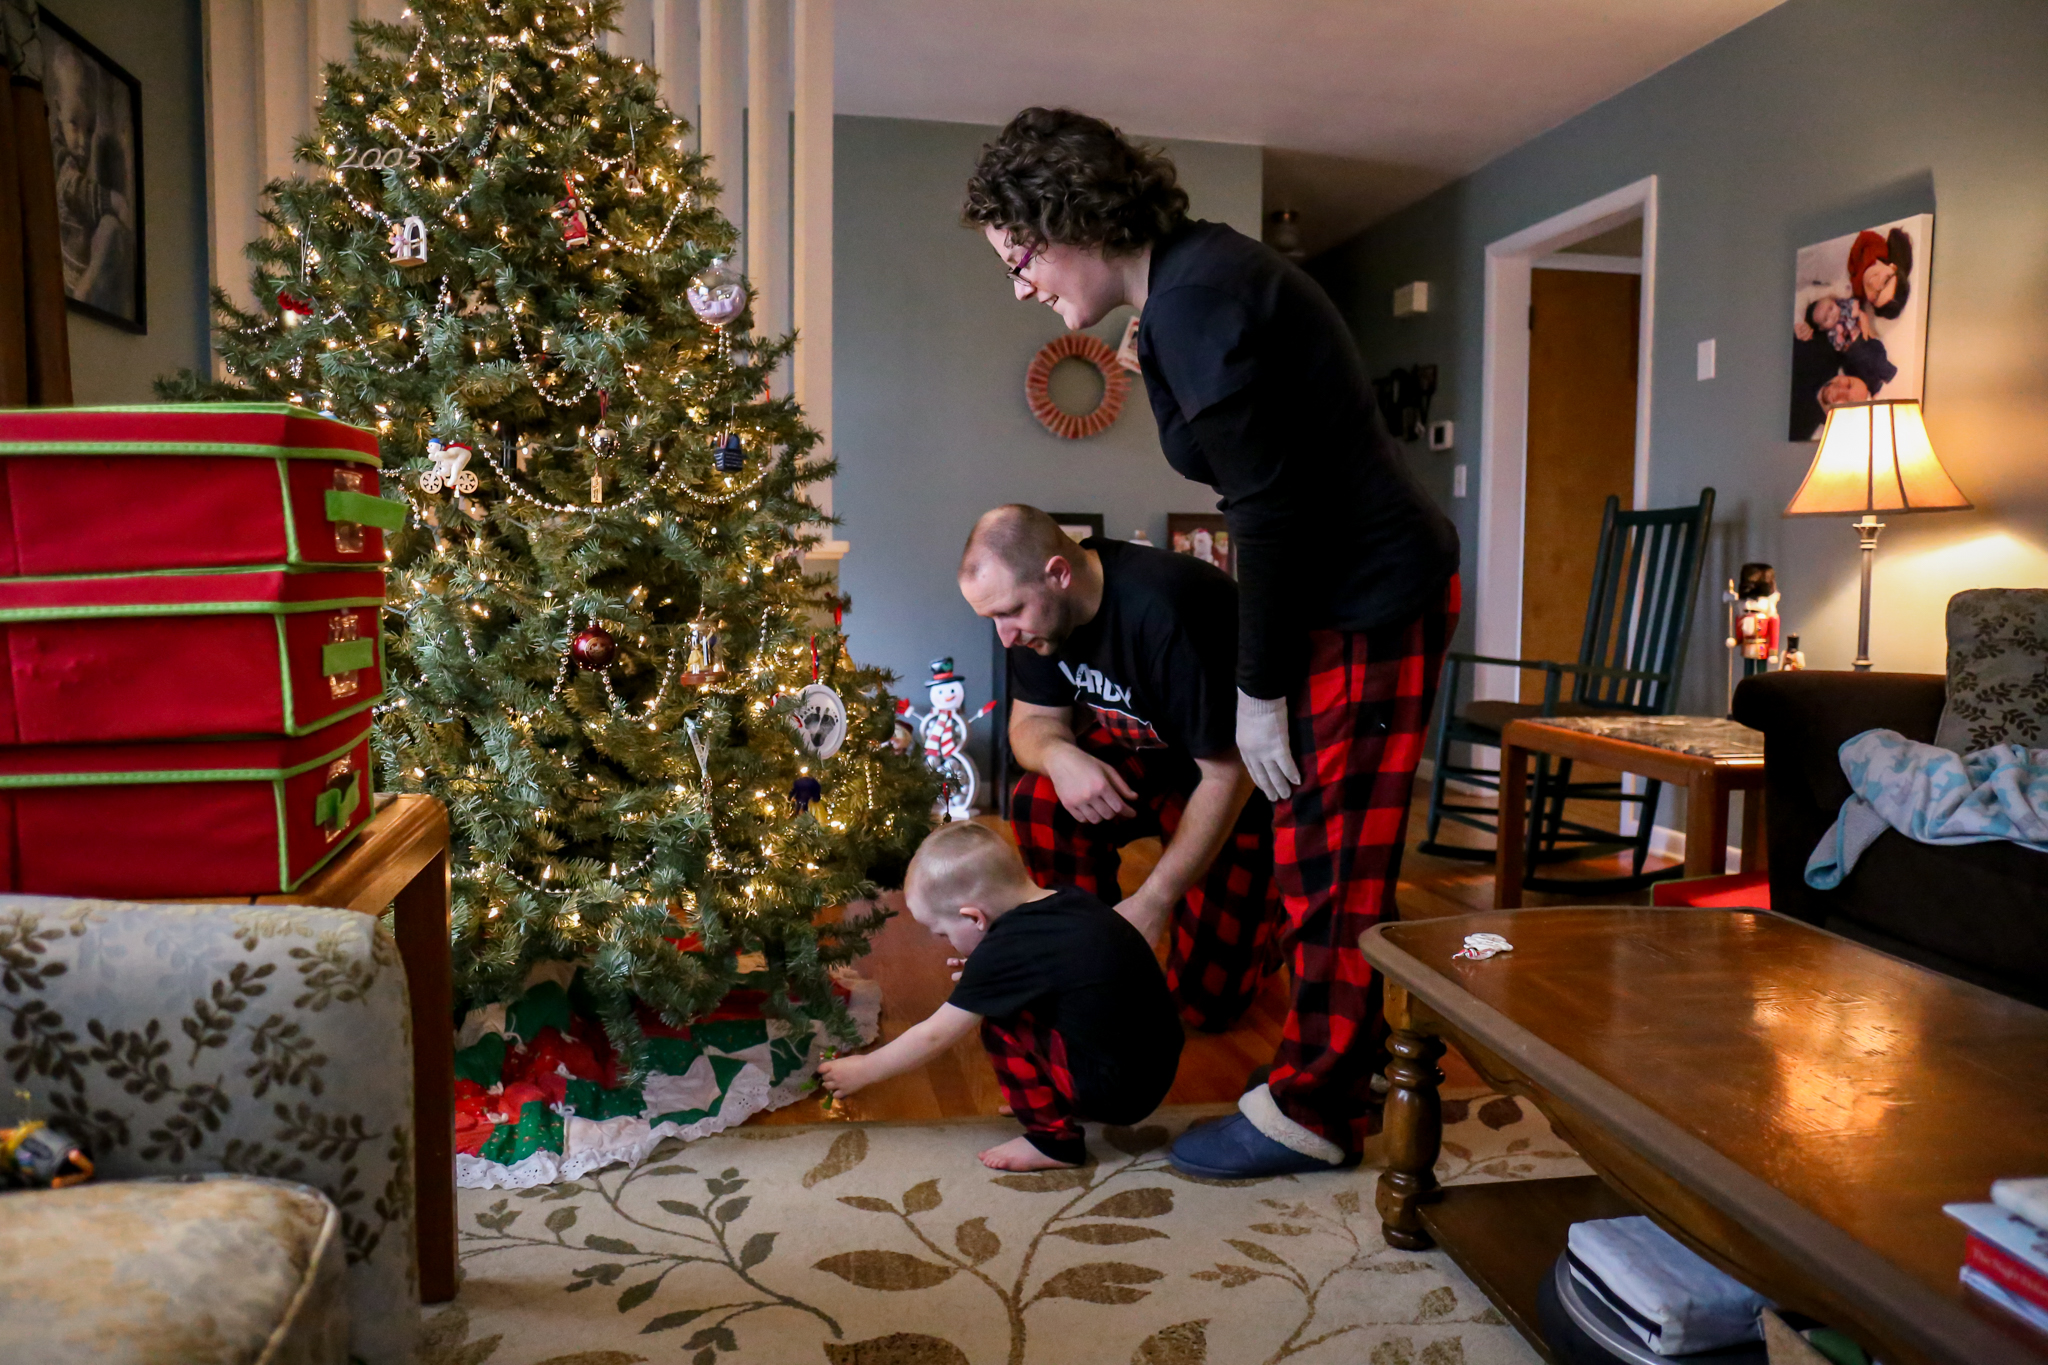 At home holiday family photography session with Jen Grima in Emmaus, PA.